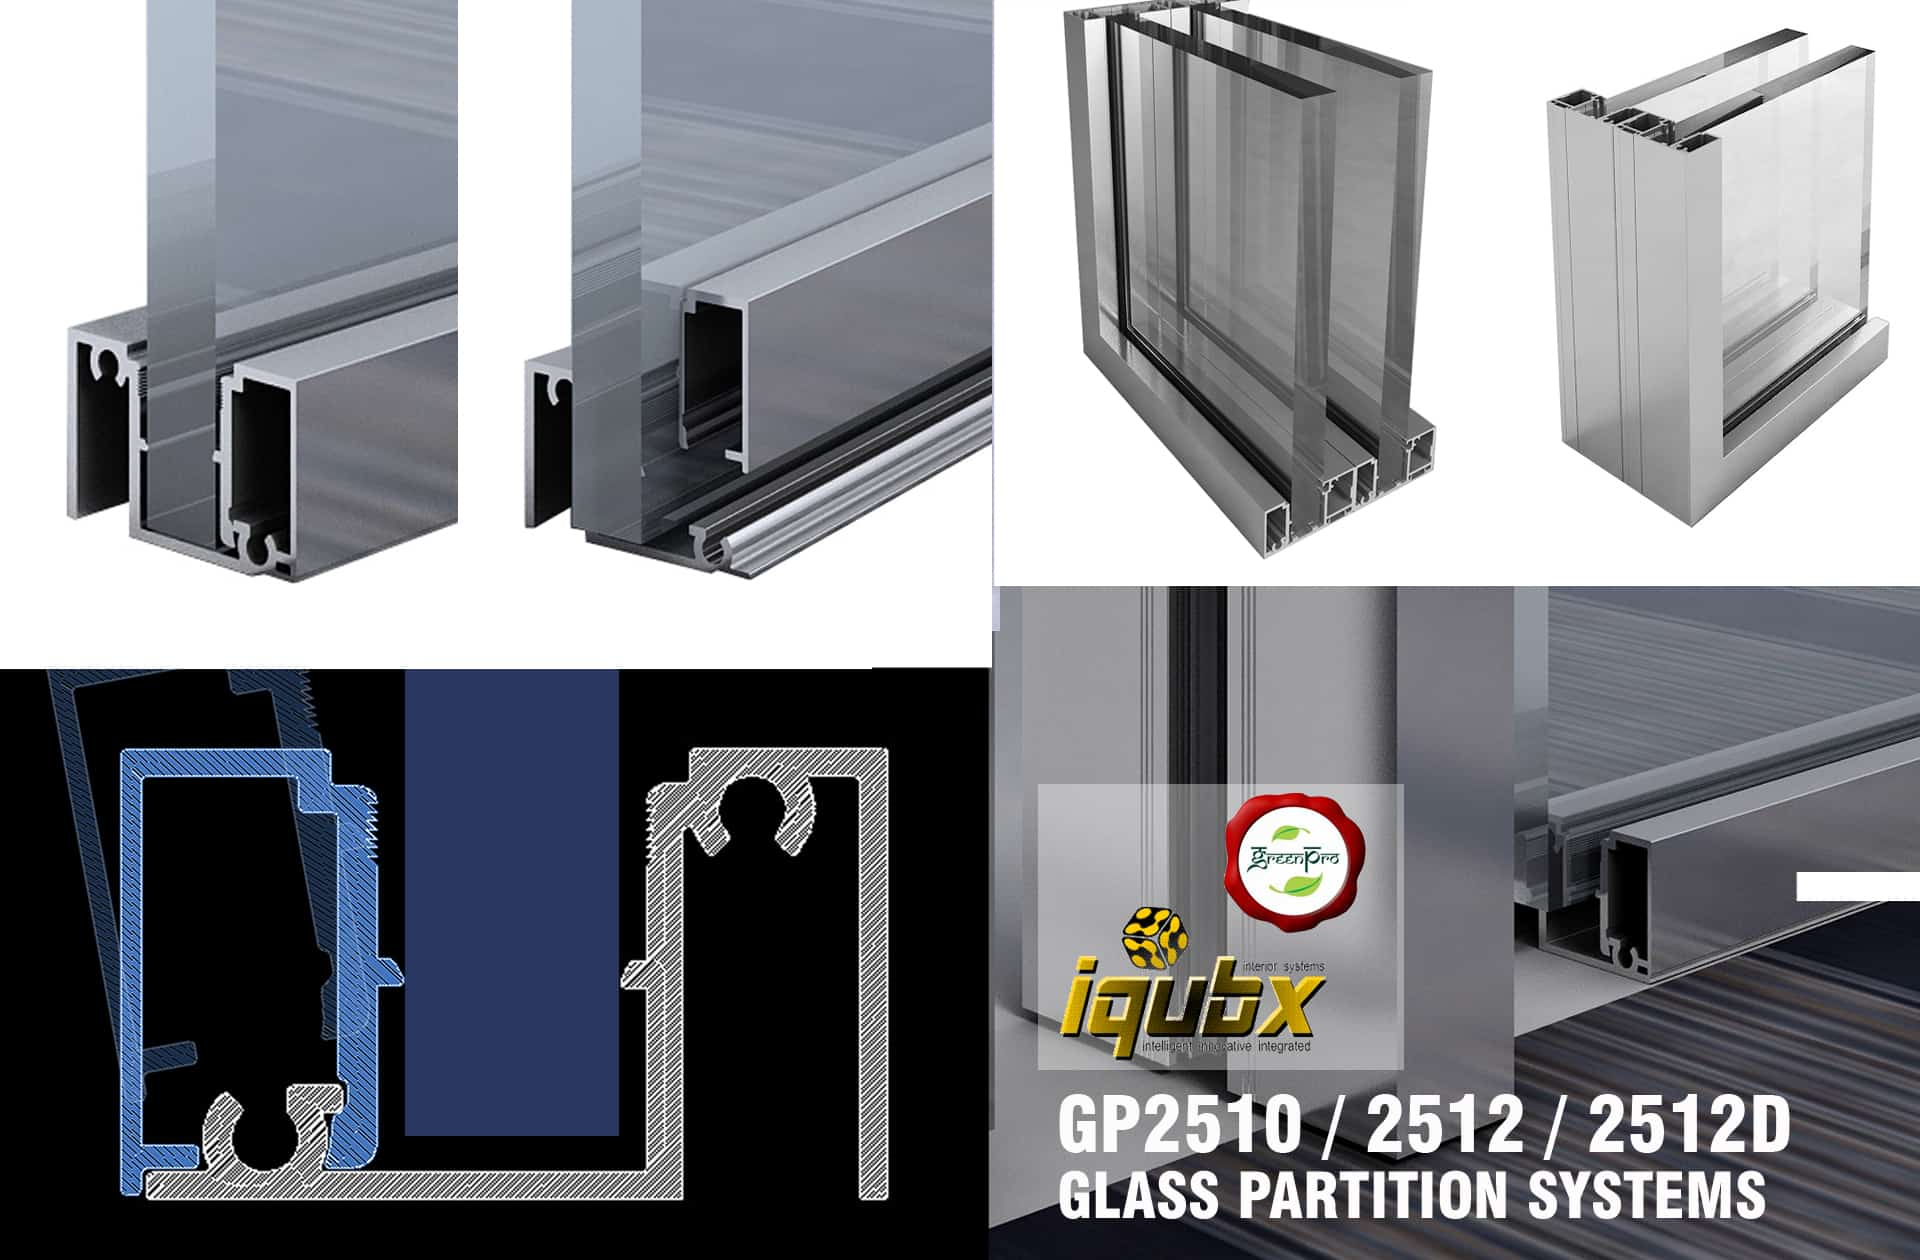 gp2510 certified iqubx glass partition systems